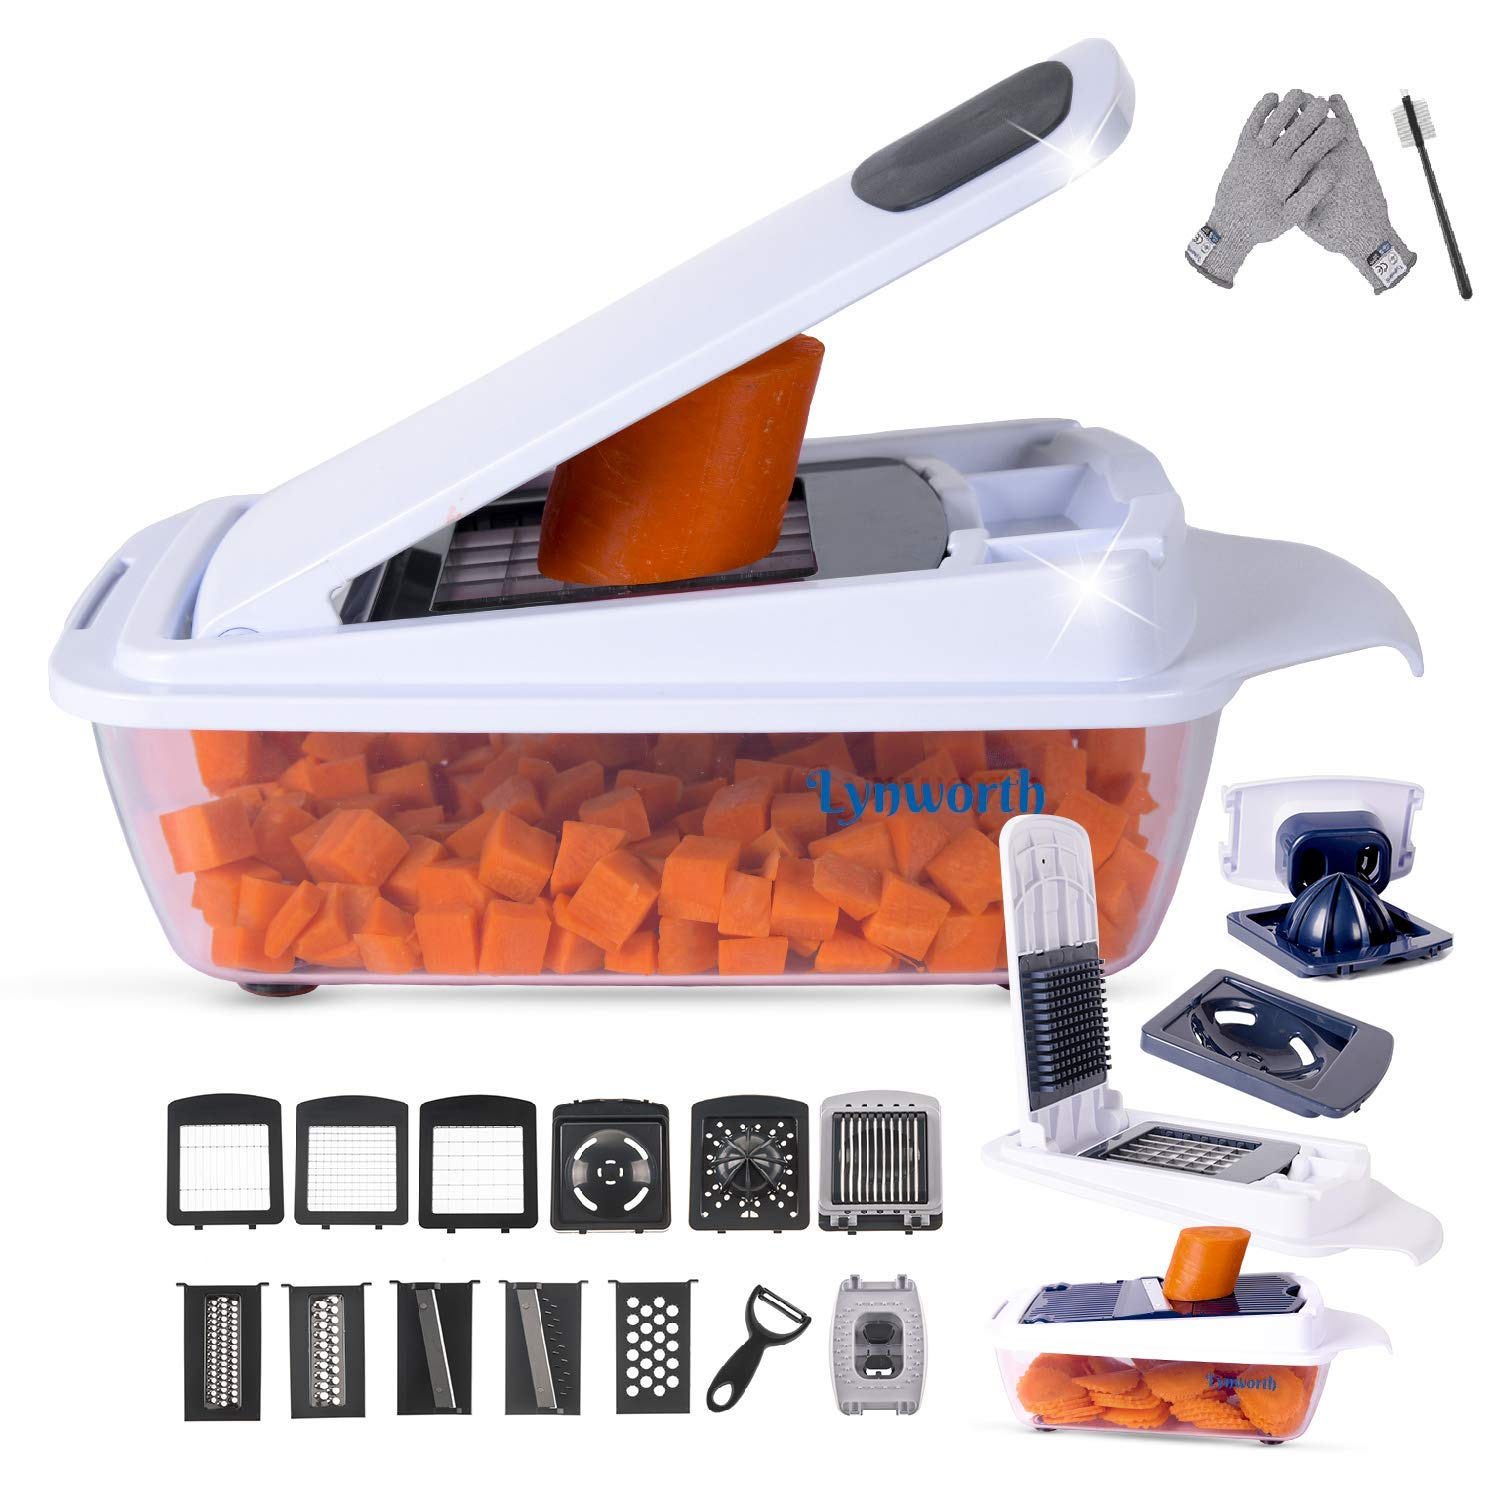 Vegetable Chopper Slicer Dicer Cutter Peeler Cheese Grater. 12-in-1 (22 Pieces). Best Manual Mandoline, Food Chopper, Lemon Squeezer, Egg White Separator, Egg Slicer. Free Cut-Resistant Gloves Brushes by Lynworth